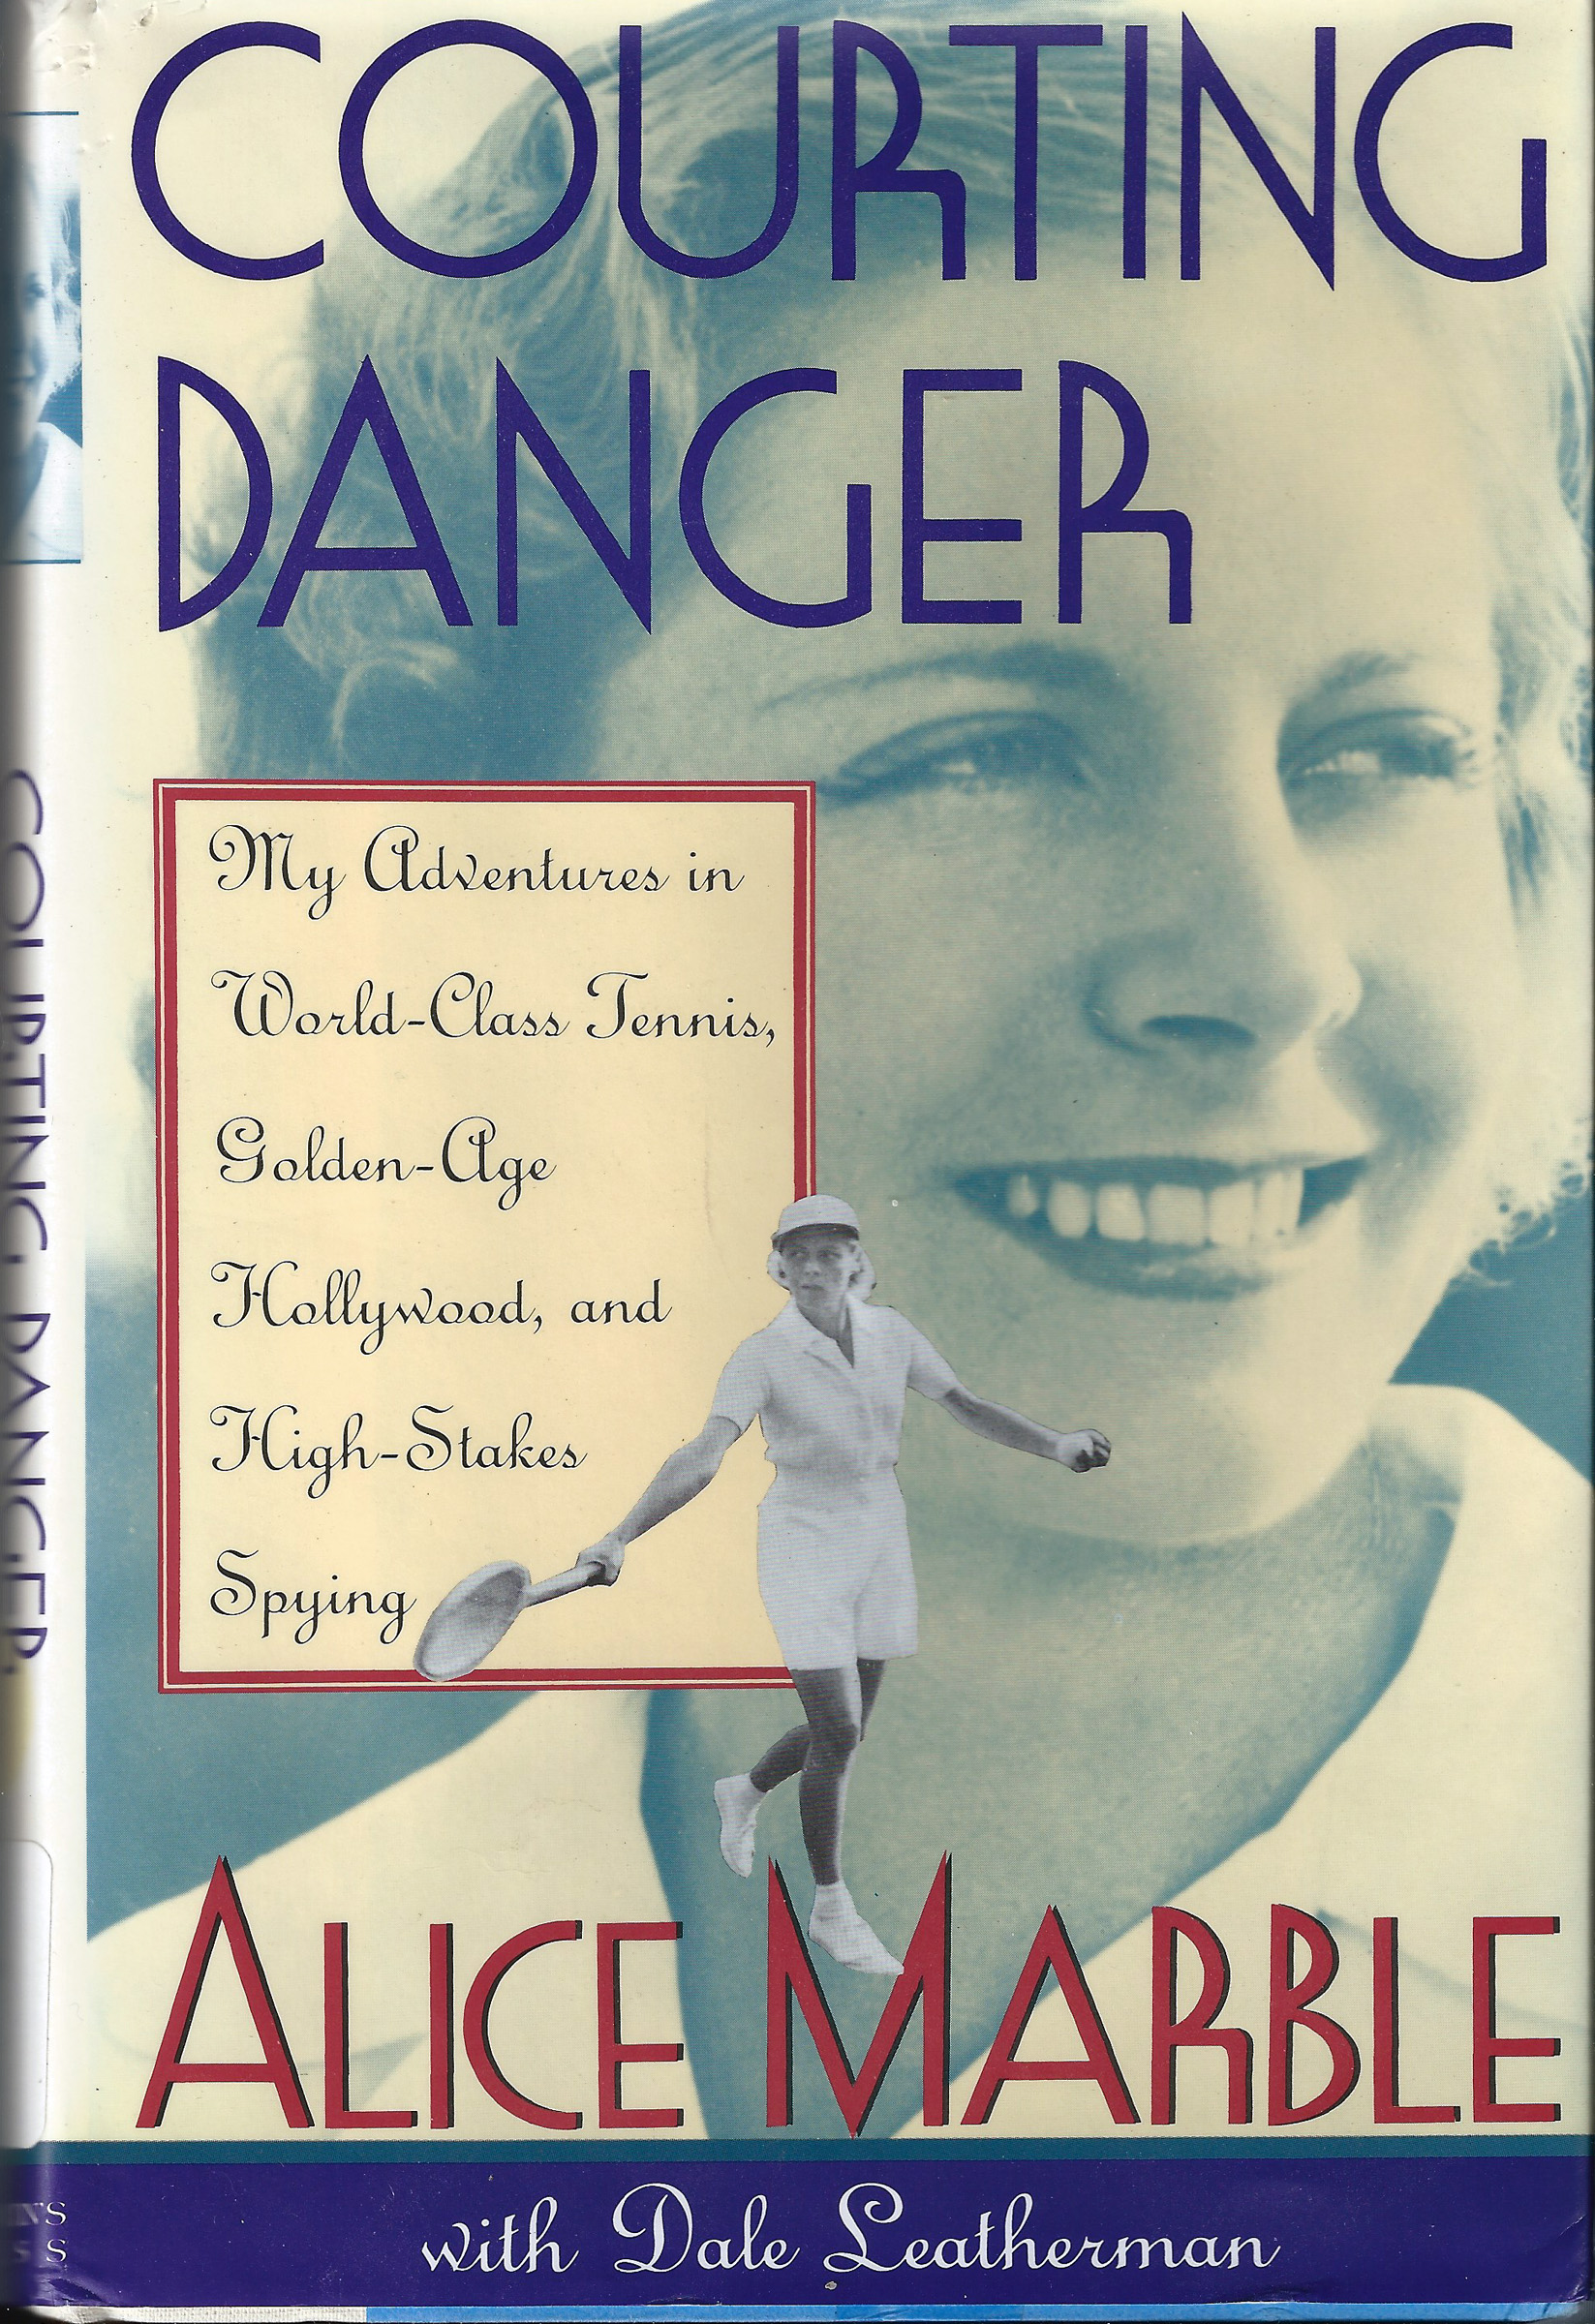 Courting Danger by Alice Marble with Dale Leatherman